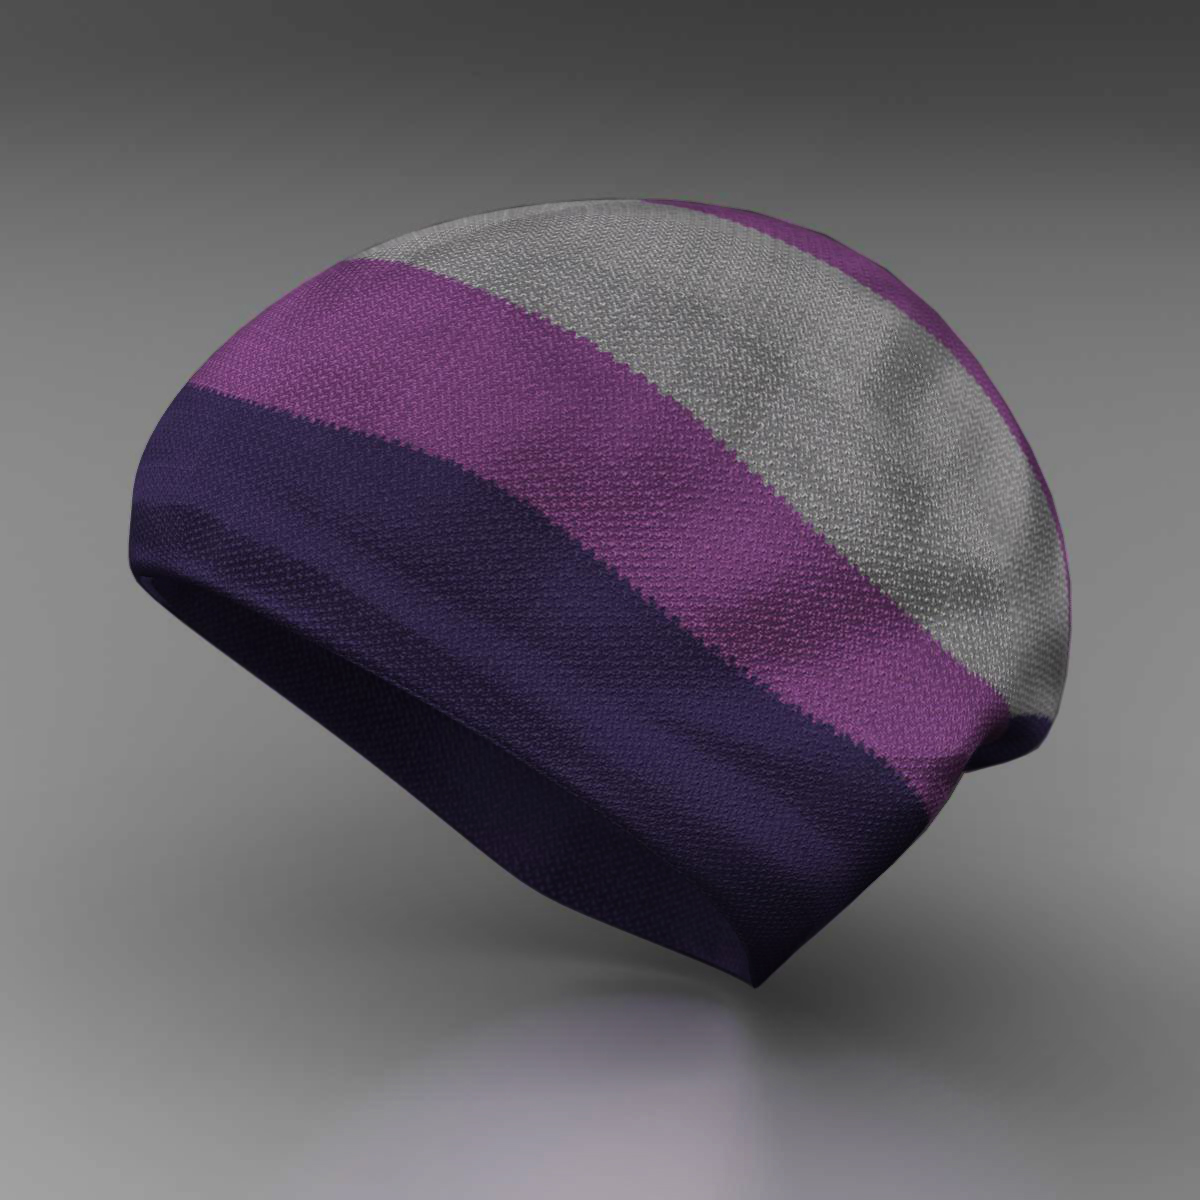 gwlân cap 3d model 3ds max fbx c4d am mb obj 160731